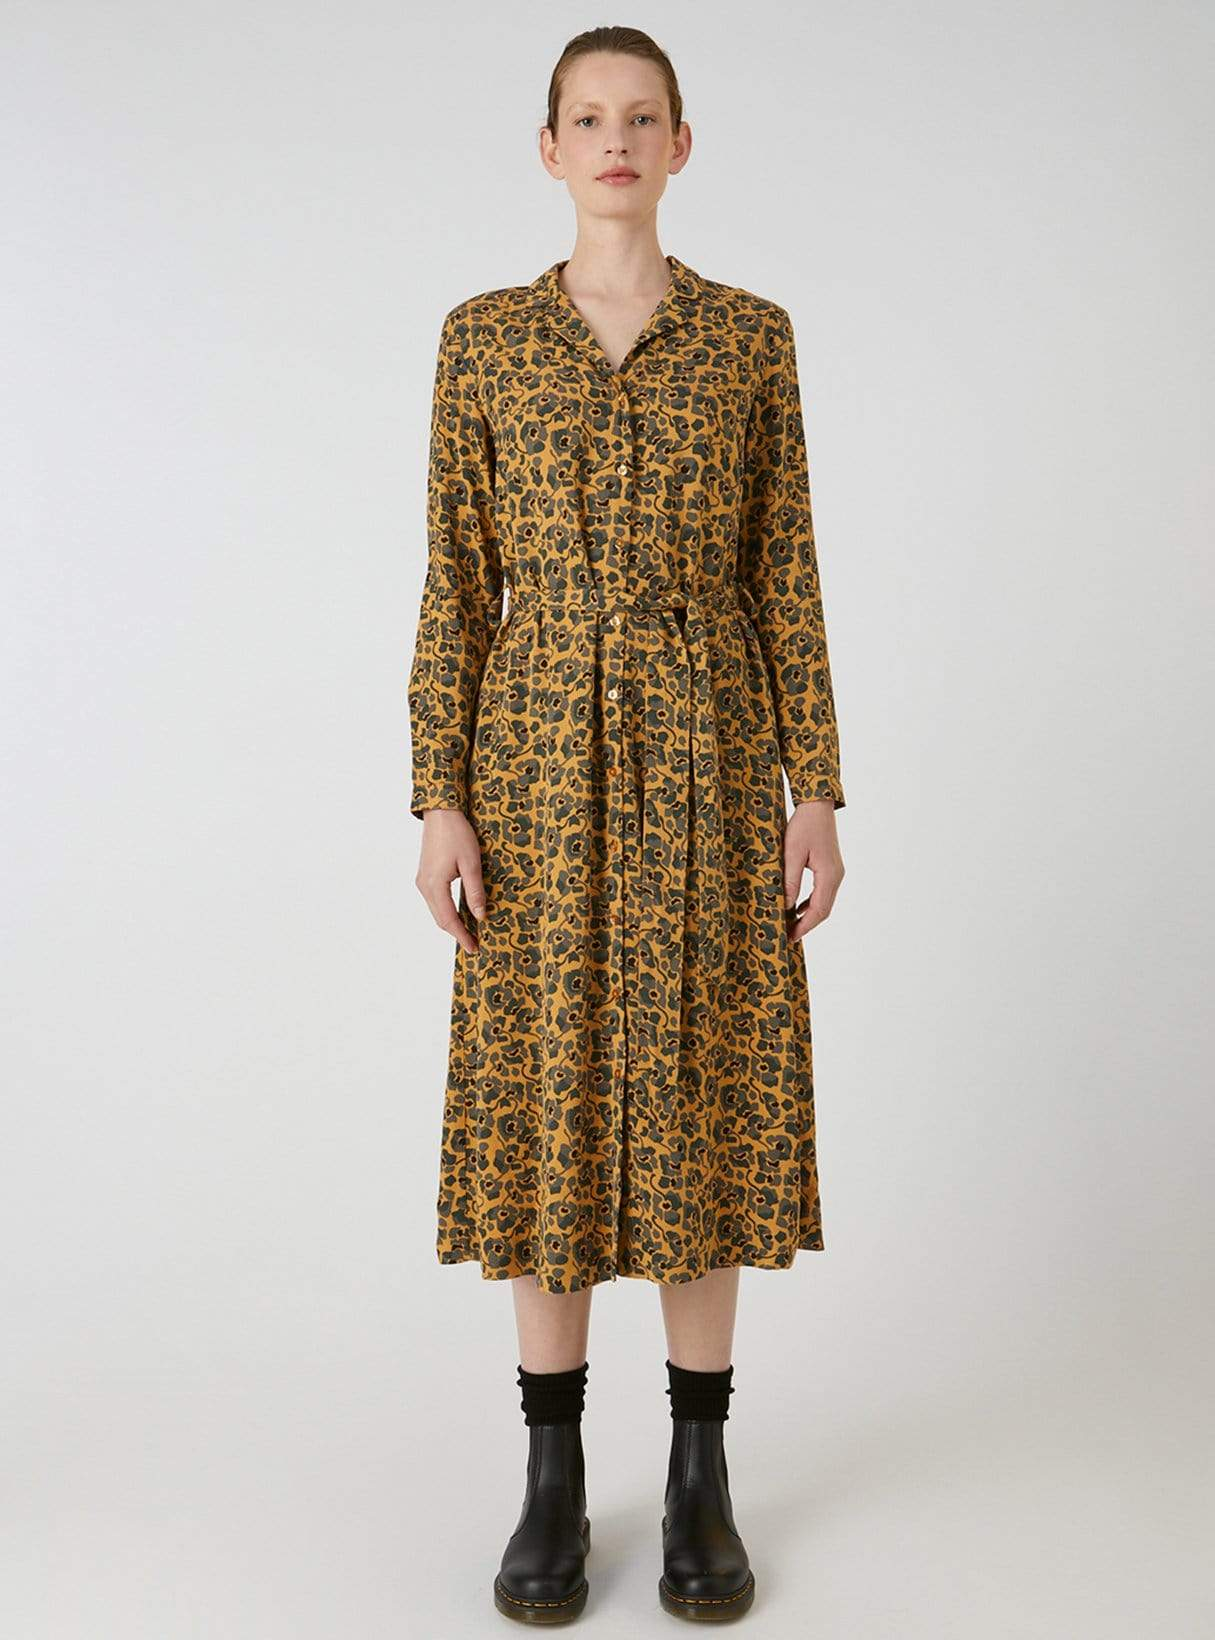 Vellaamo camou flowers - woven dresses - caramel butter